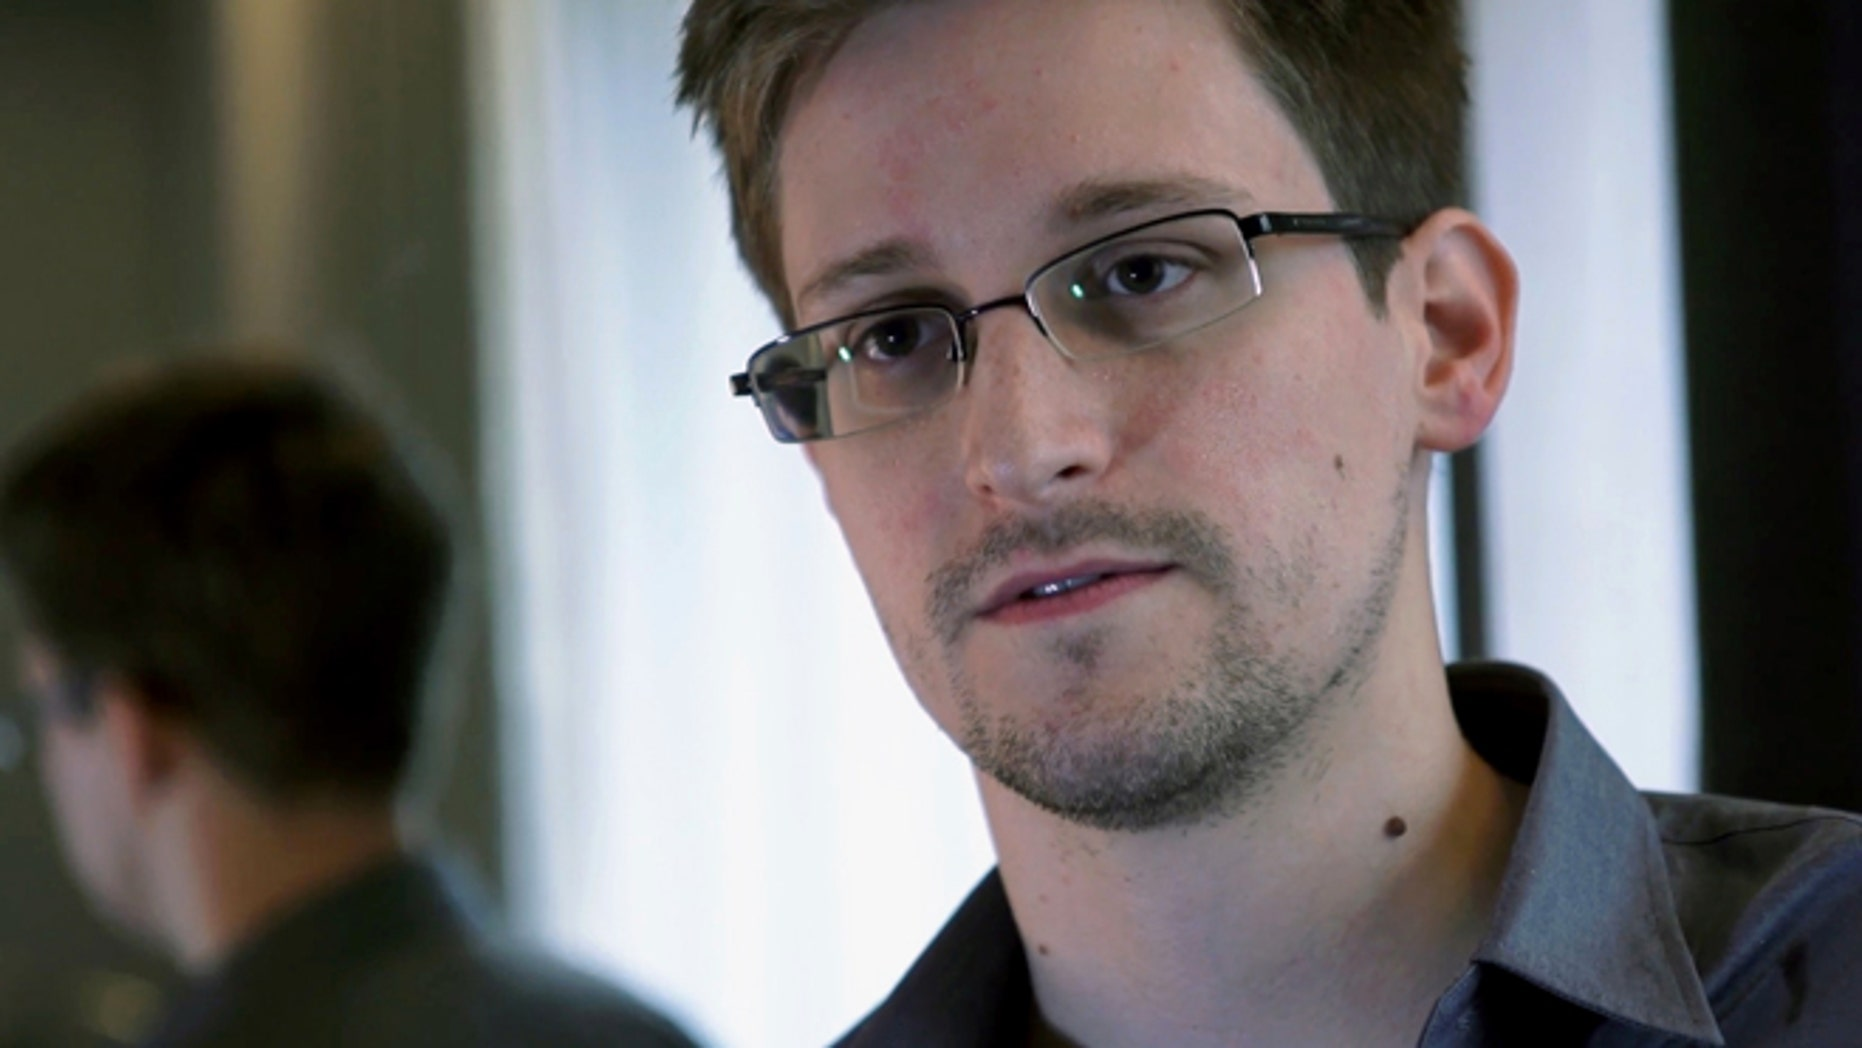 June 9, 2013: This photo provided by The Guardian shows Edward Snowden, who worked as a contract employee at the U.S. National Security Agency, in Hong Kong.